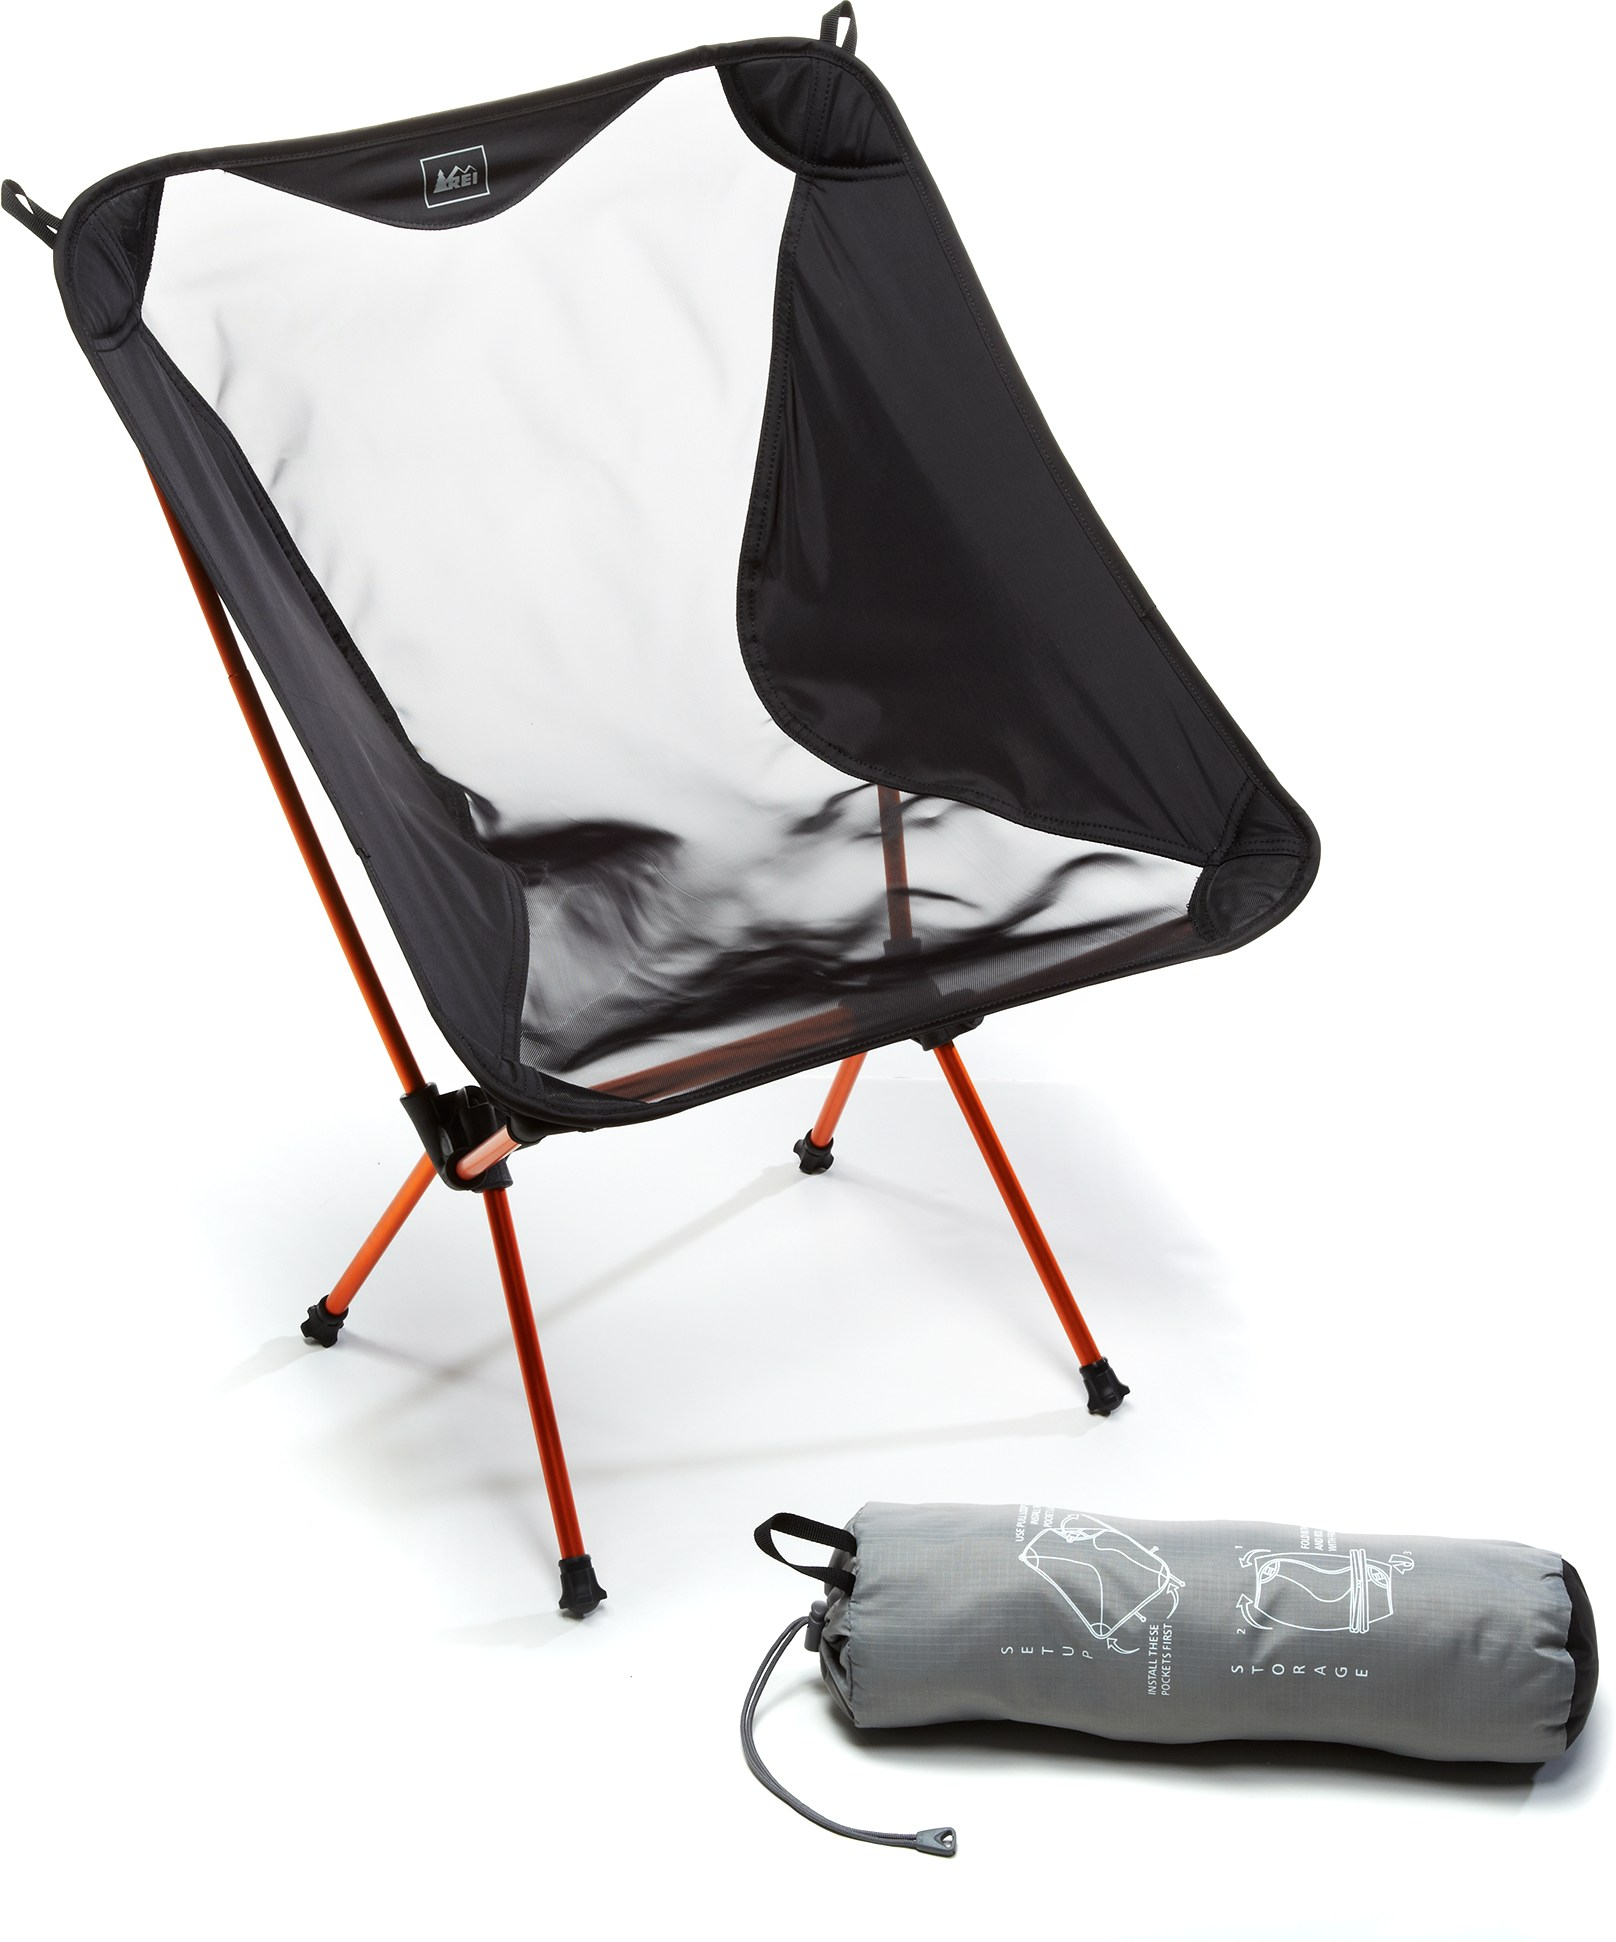 camp chairs rei modern kitchen best backpacking but comfortable chair page 4 the